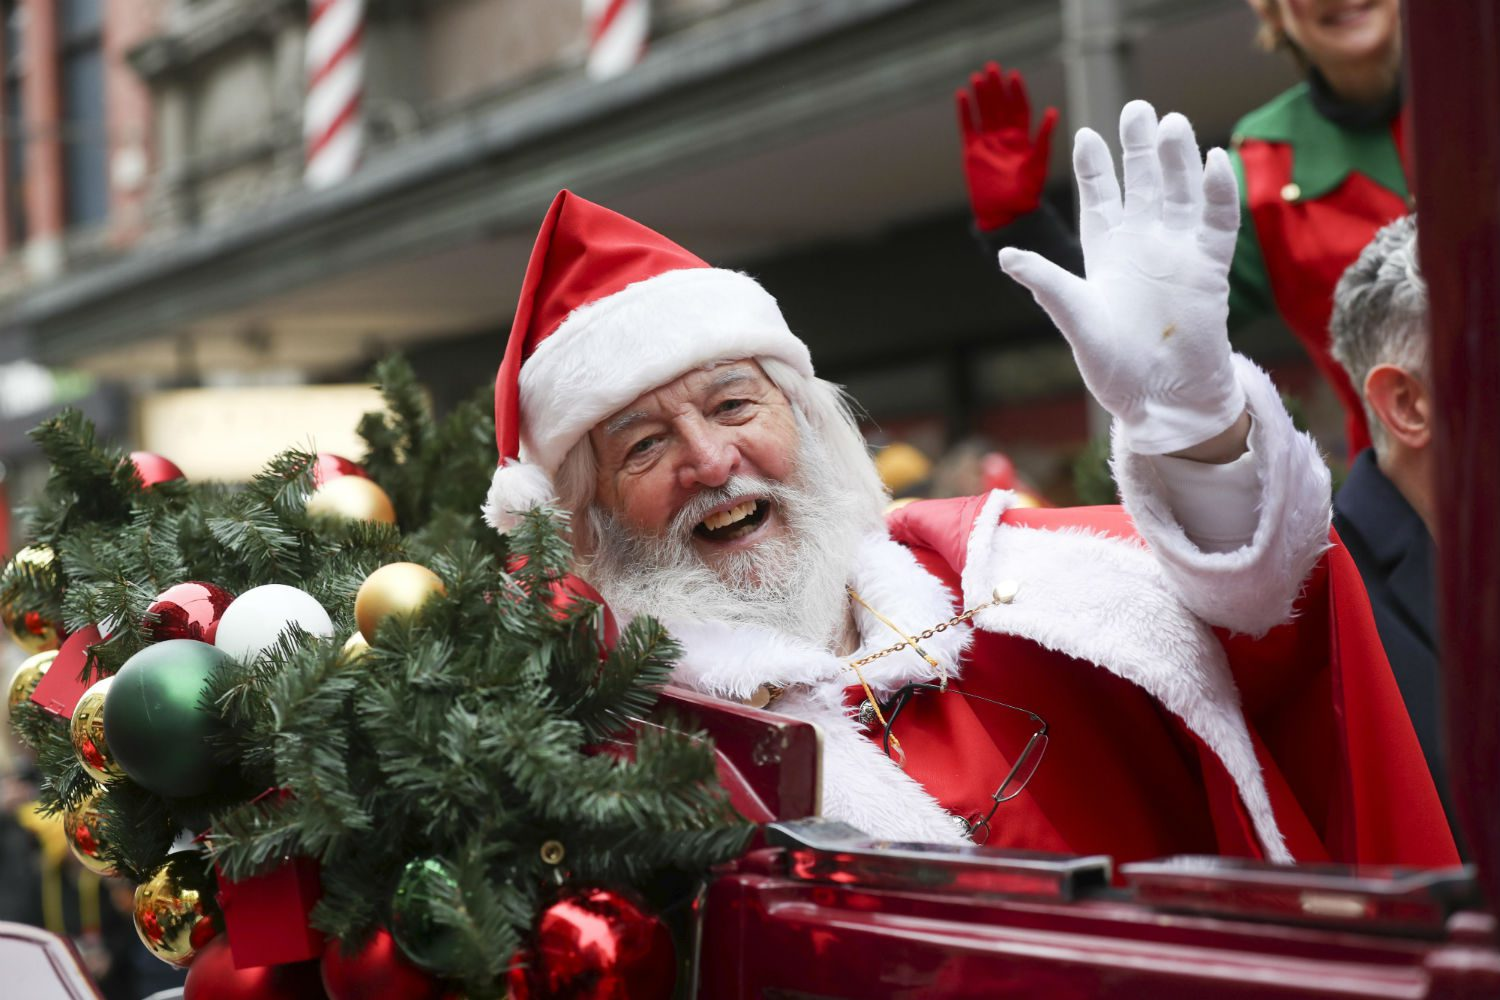 Date for Santa Claus Arriving in Arnotts announced!